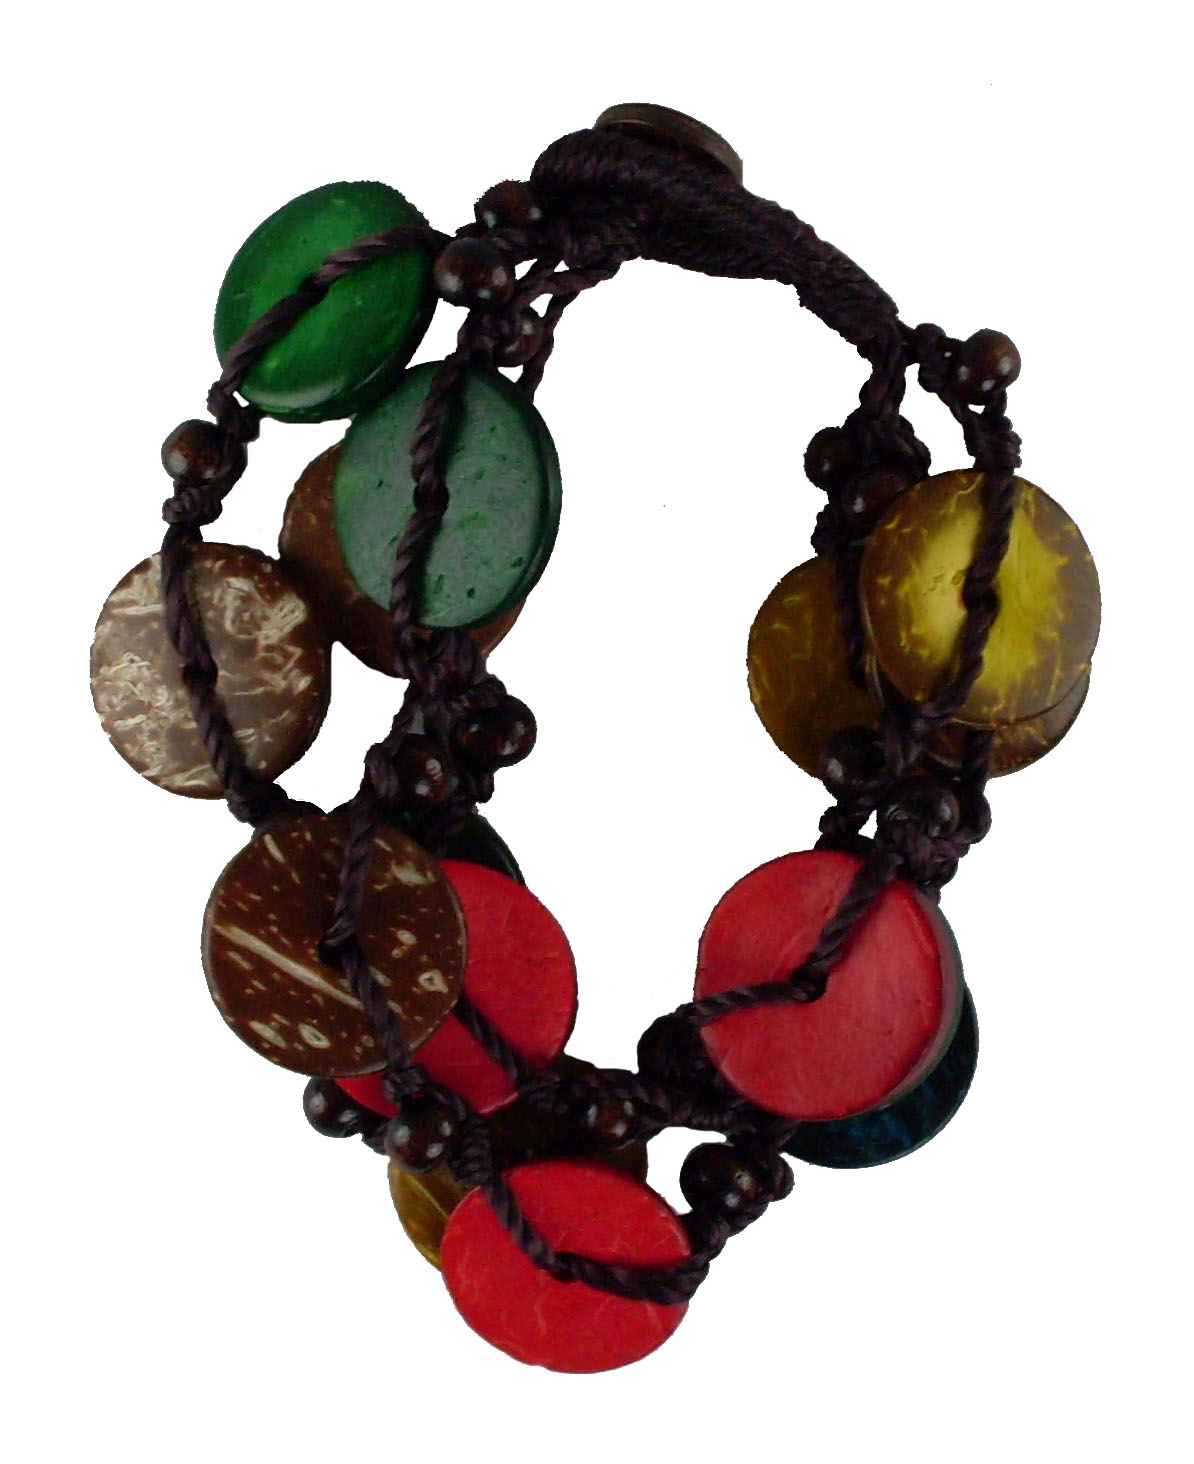 Island Colored Coco Bead Bracelet #1